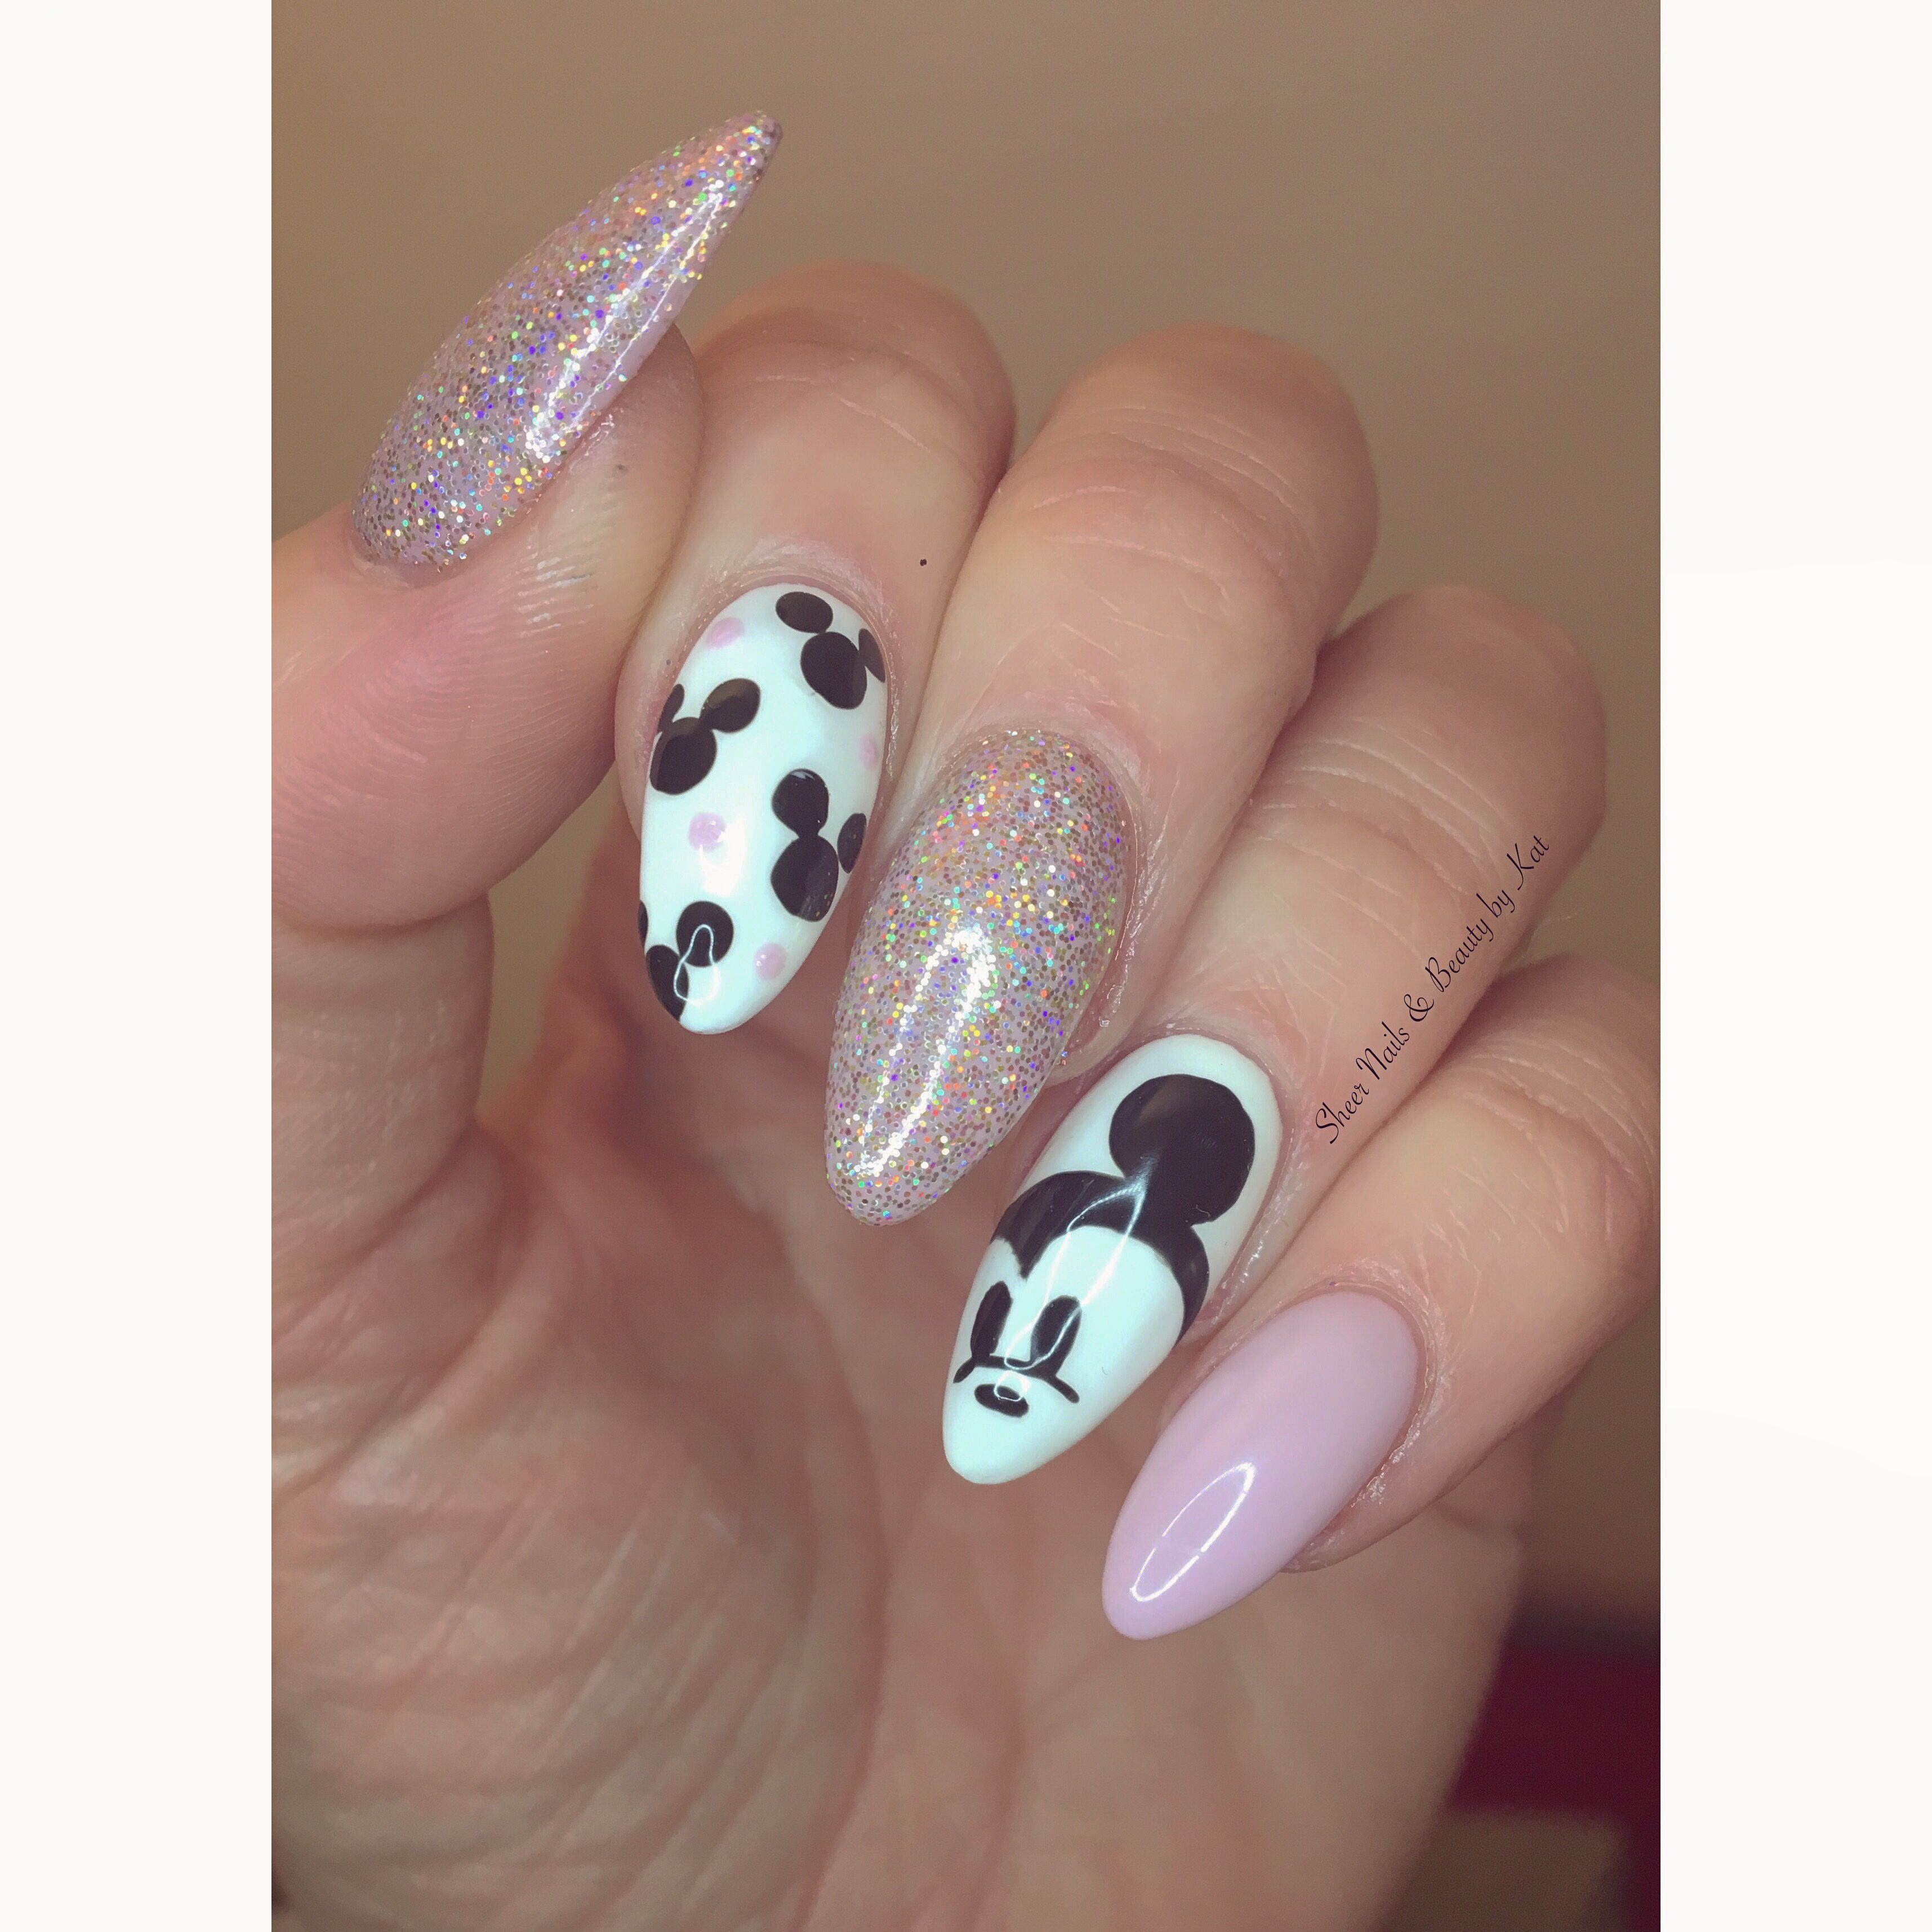 Disney Nails Gelish Pink With Magpie Glitter Amelia And Freehand Mickey Mouse Nail Art Mickey Nails Disneyland Nails Minnie Mouse Nails